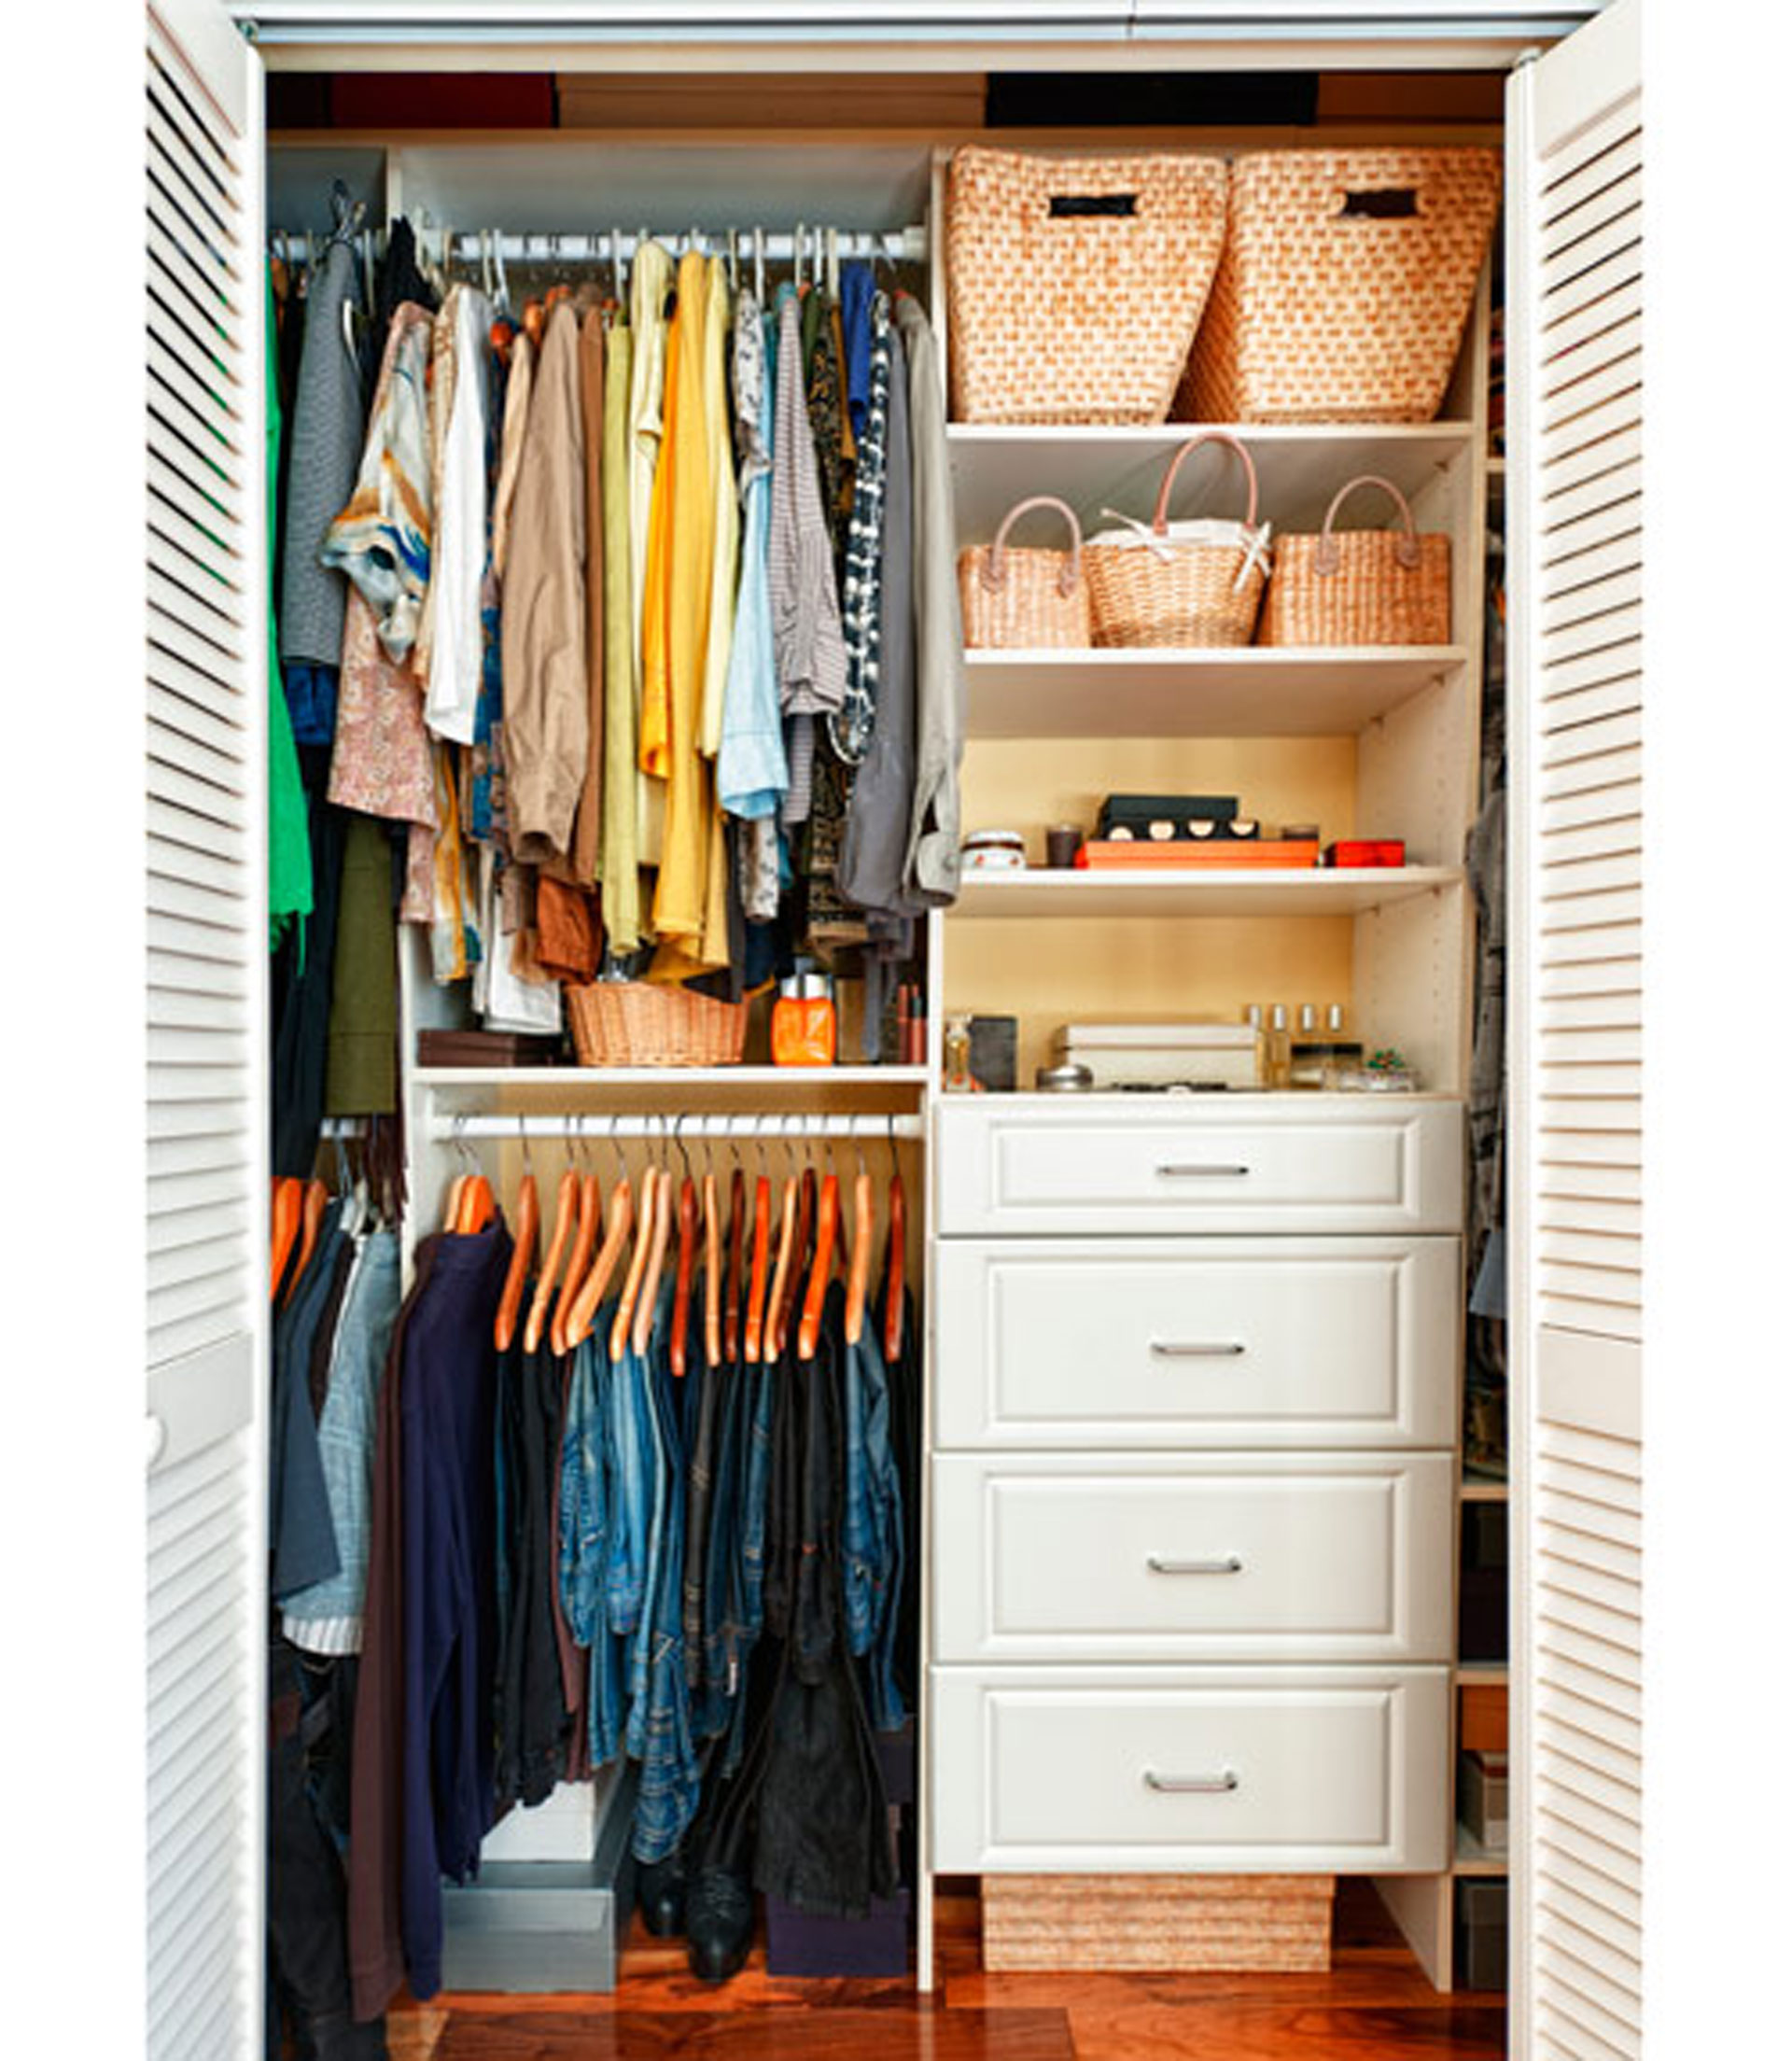 Closet Storage Storage Solutions - Cool diy coat rack for maximizing closet space